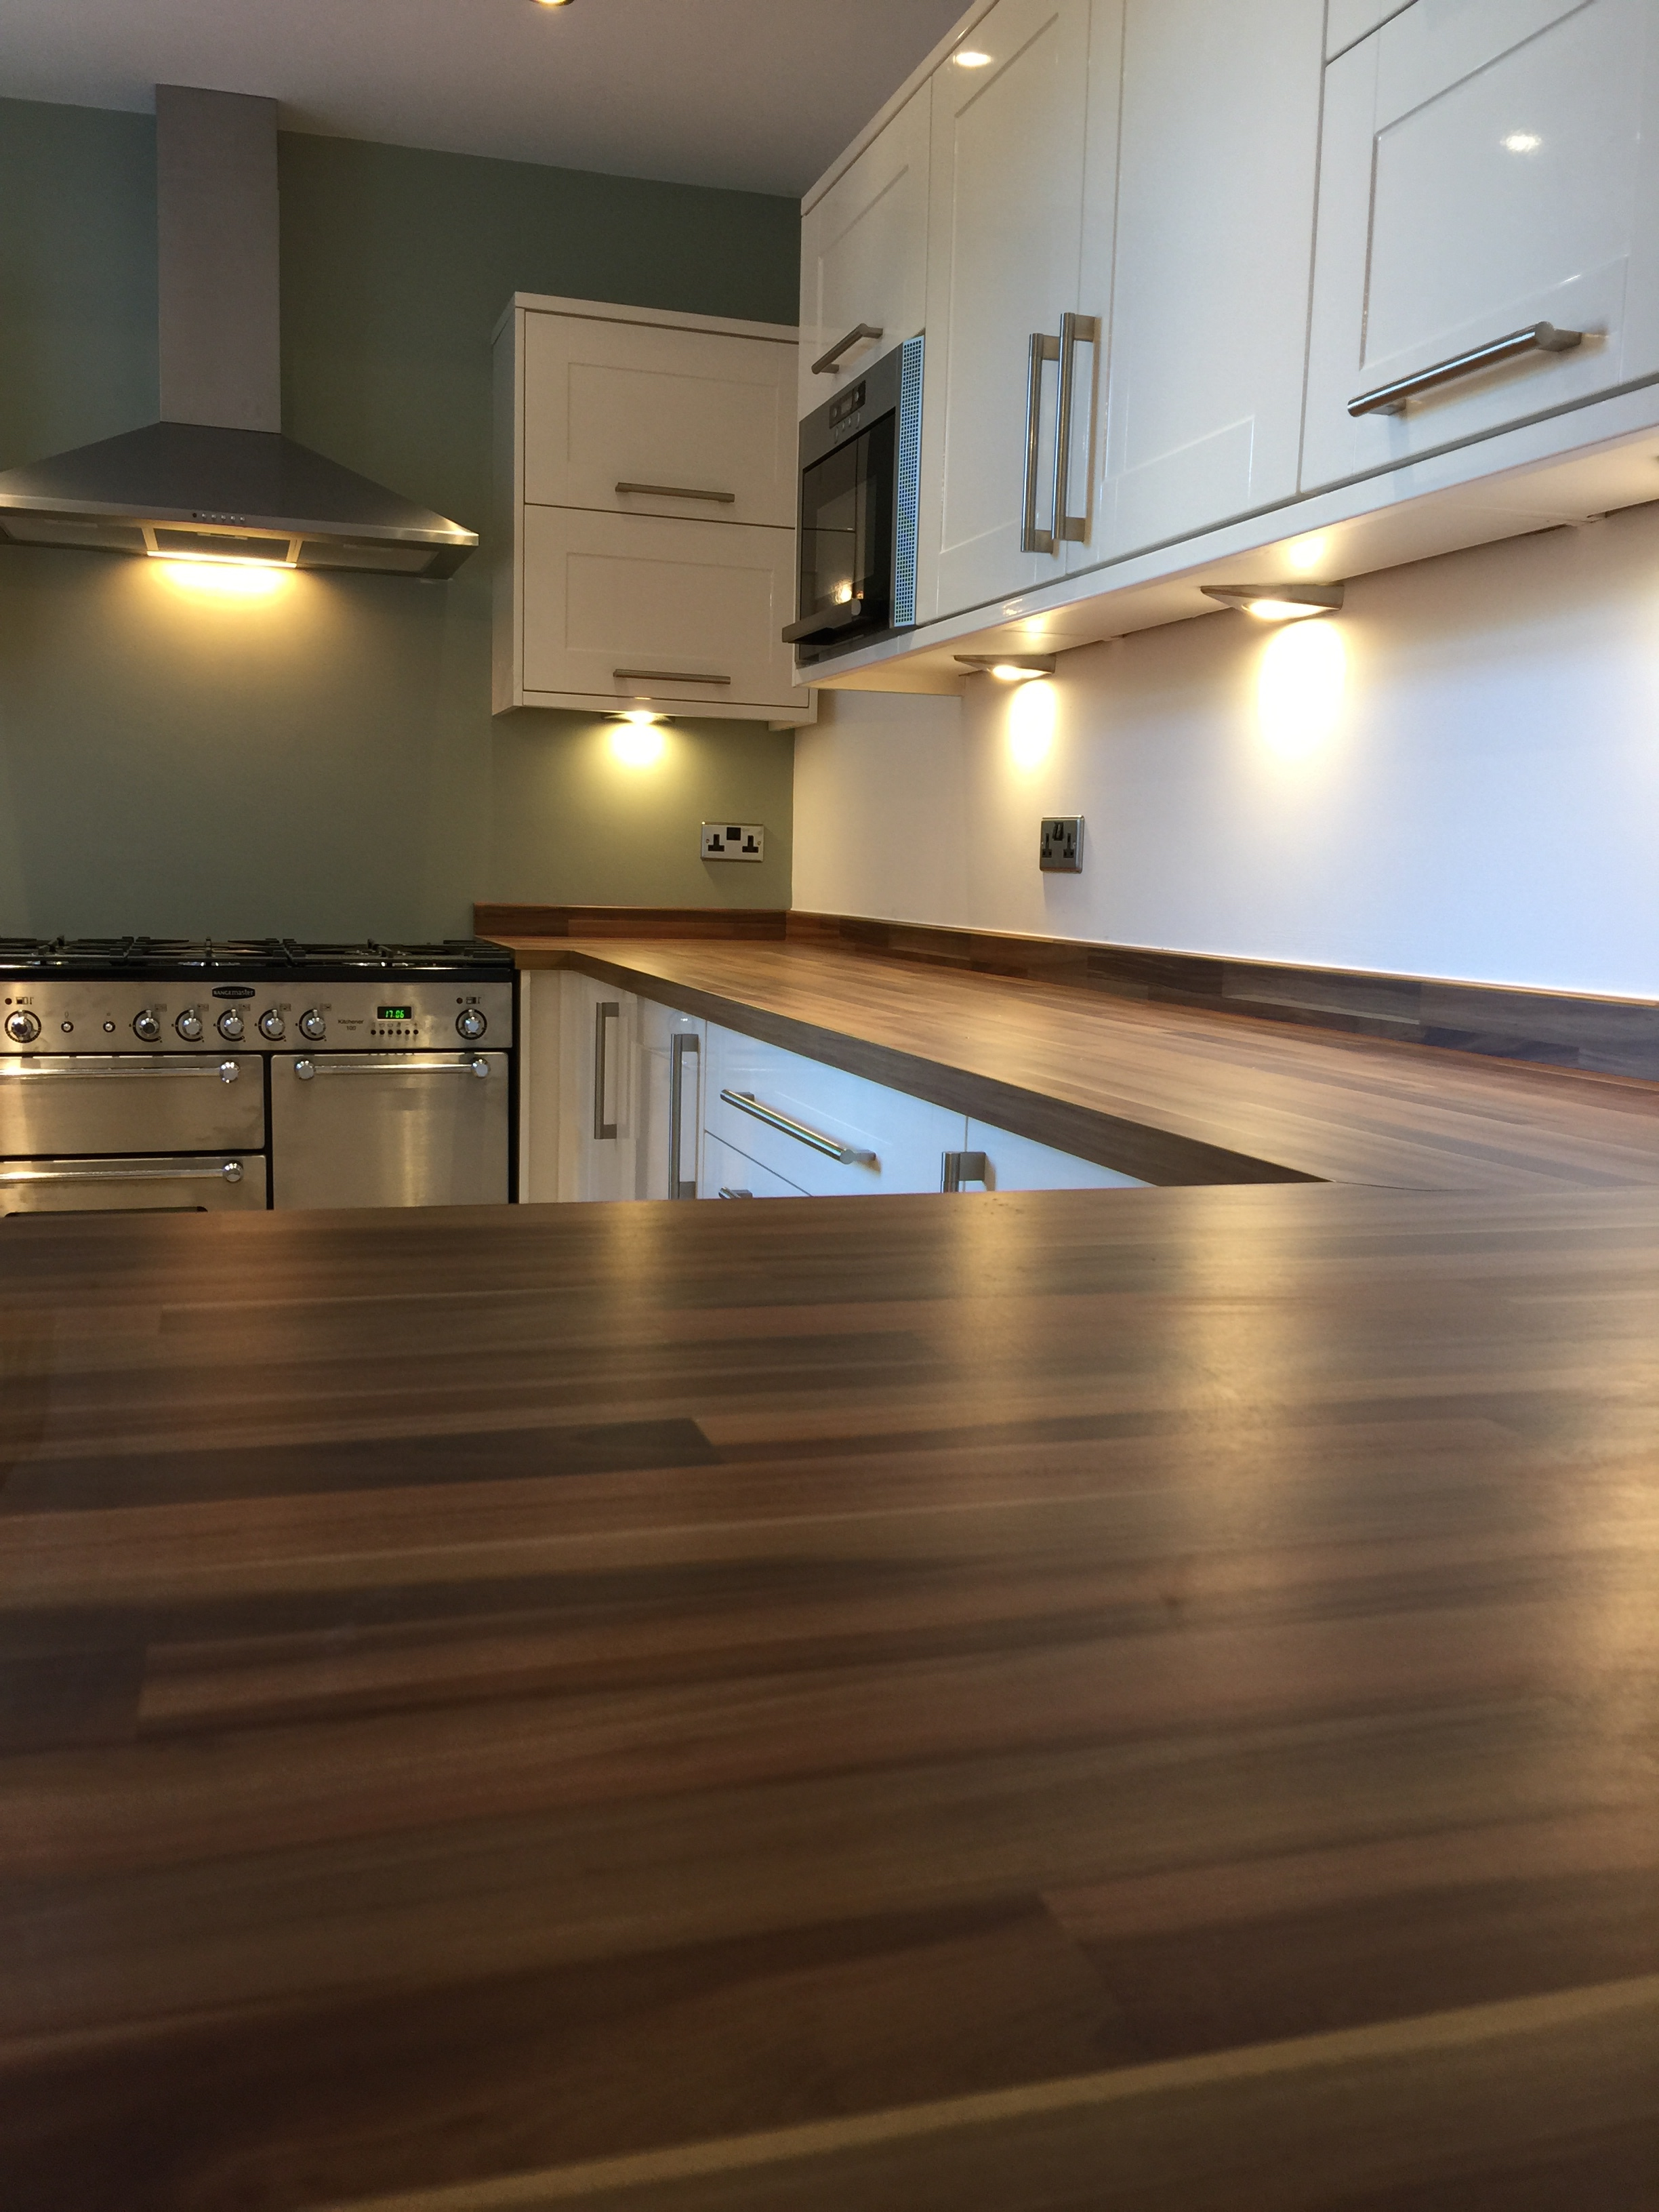 A Kitchen Worktop with the WOW factor